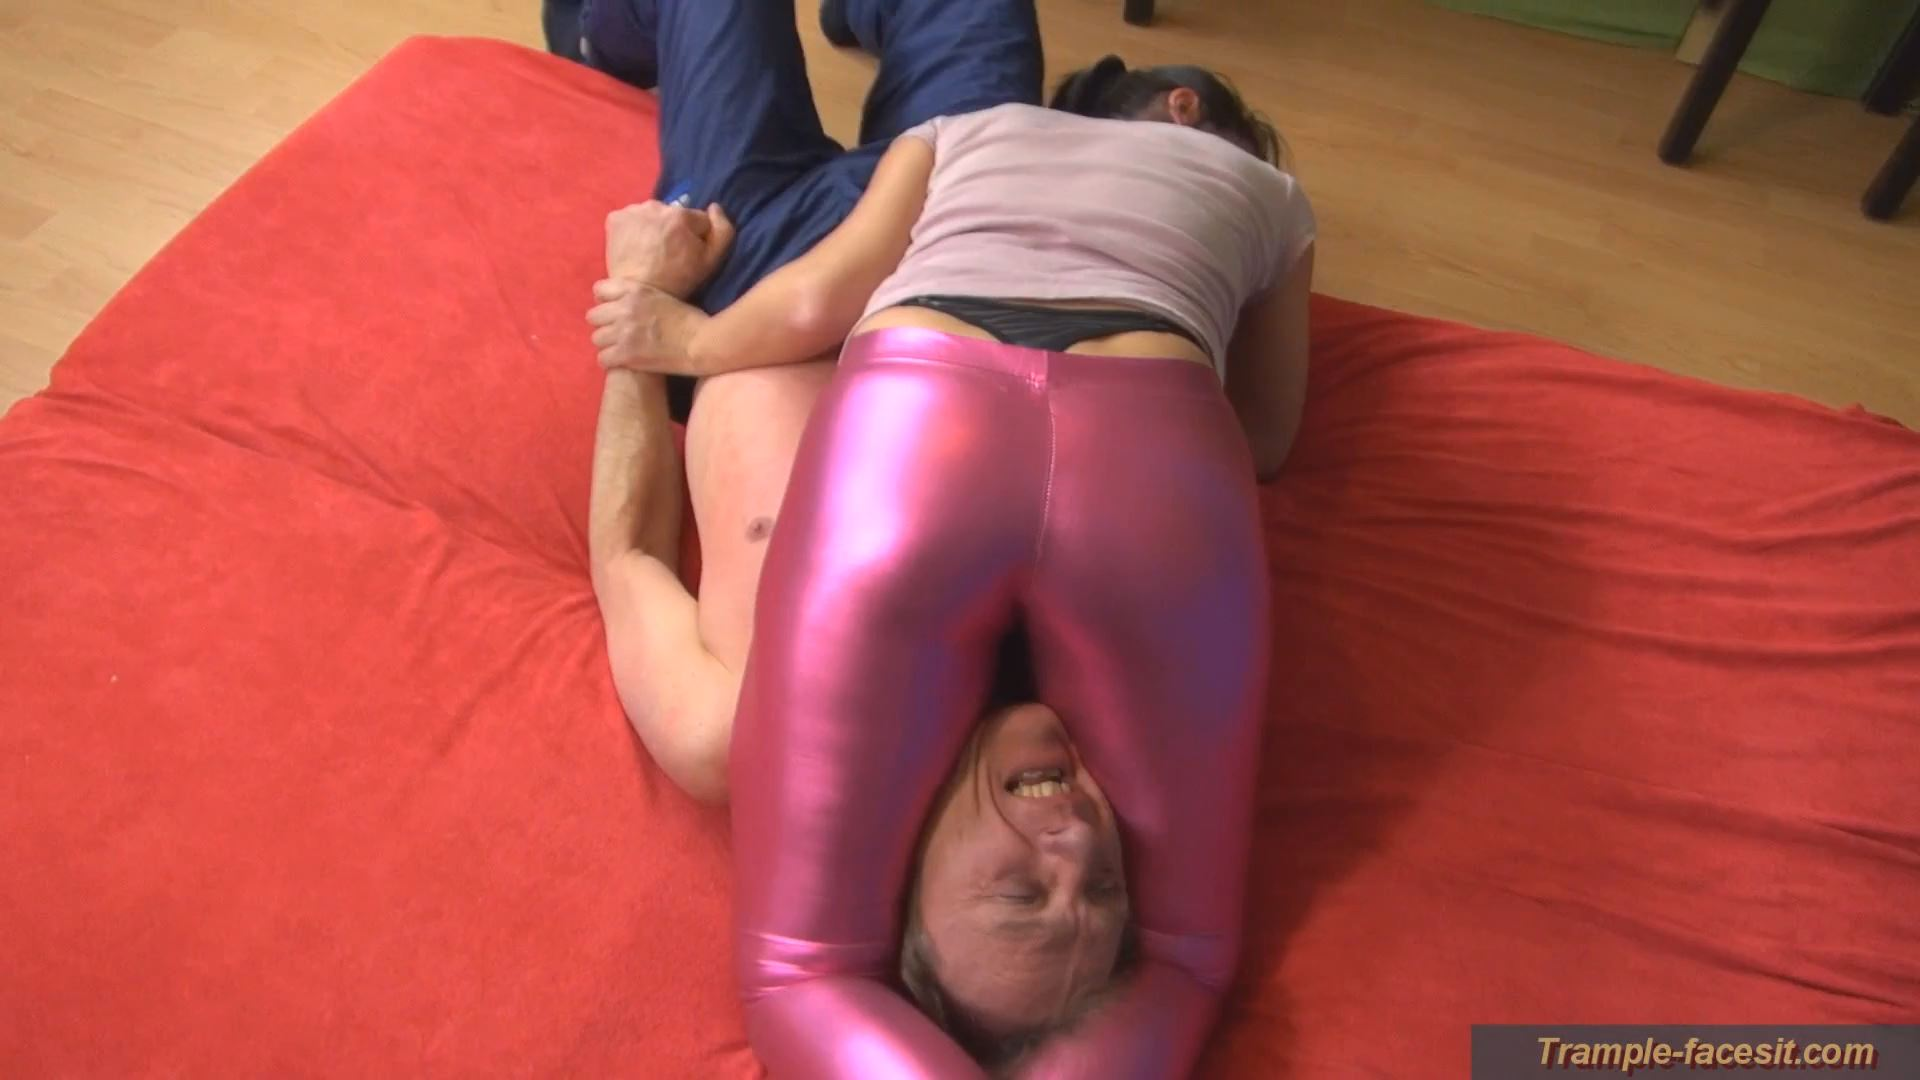 Daliah In Scene: The trap of the metal-legs - FACESITTING-PARADISE - FULL HD/1080p/MP4